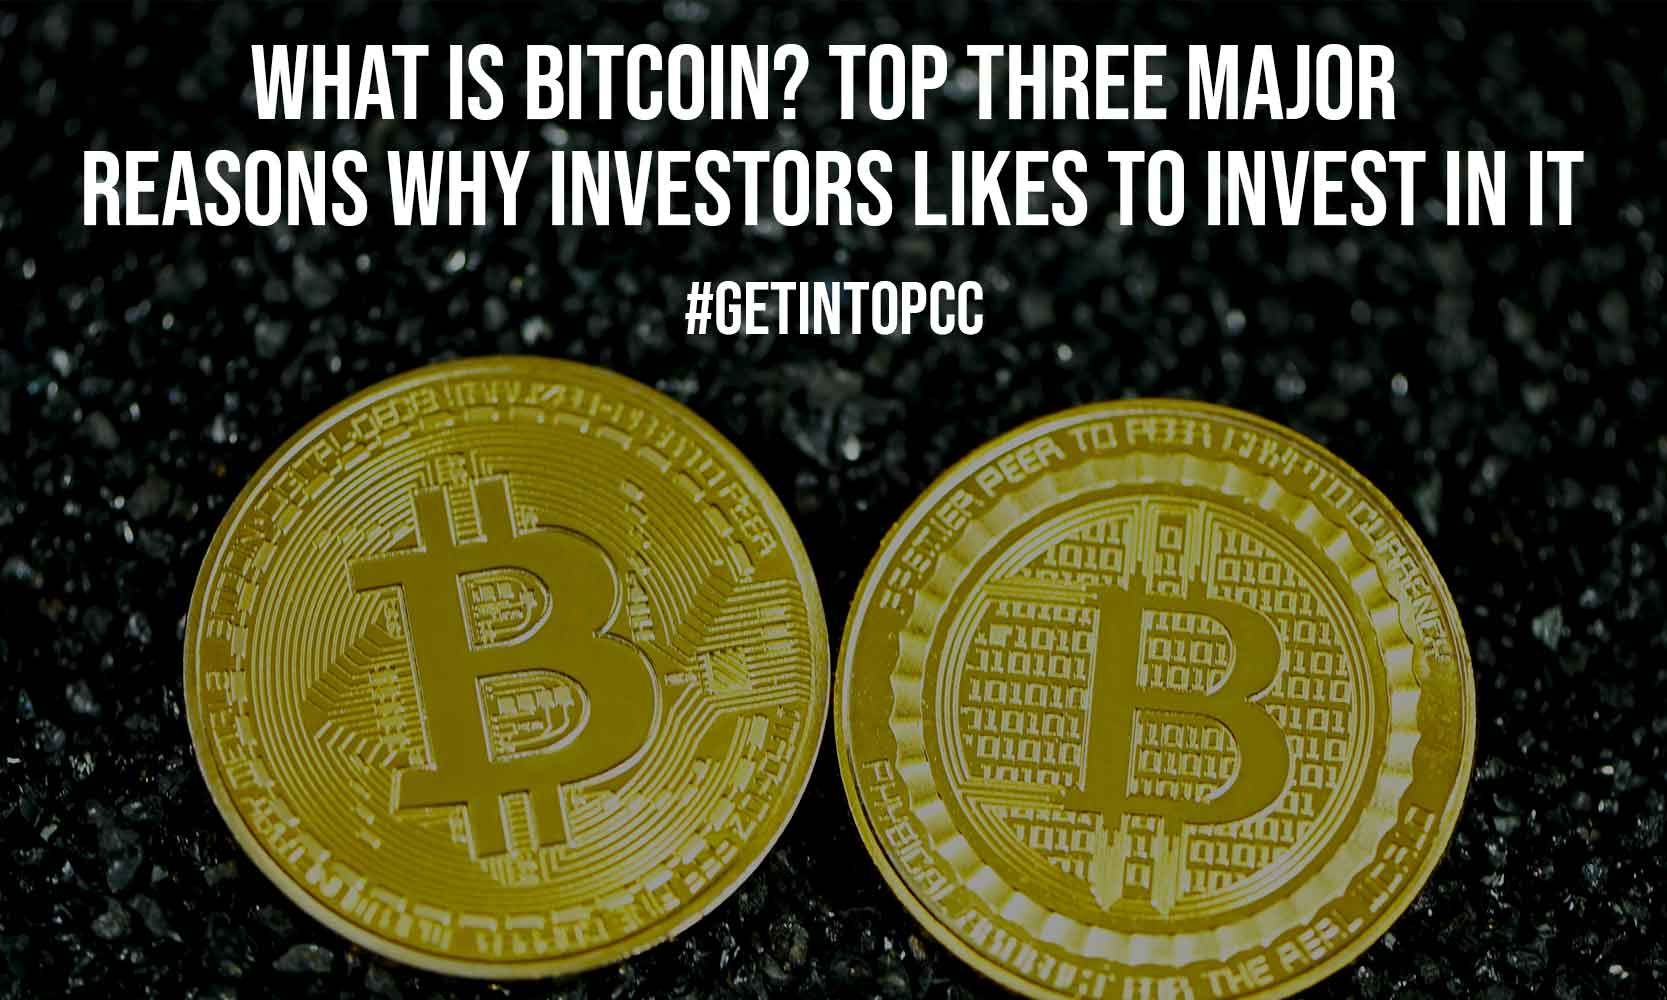 What is Bitcoin Top Three Major Reasons Why Investors Likes To Invest In It